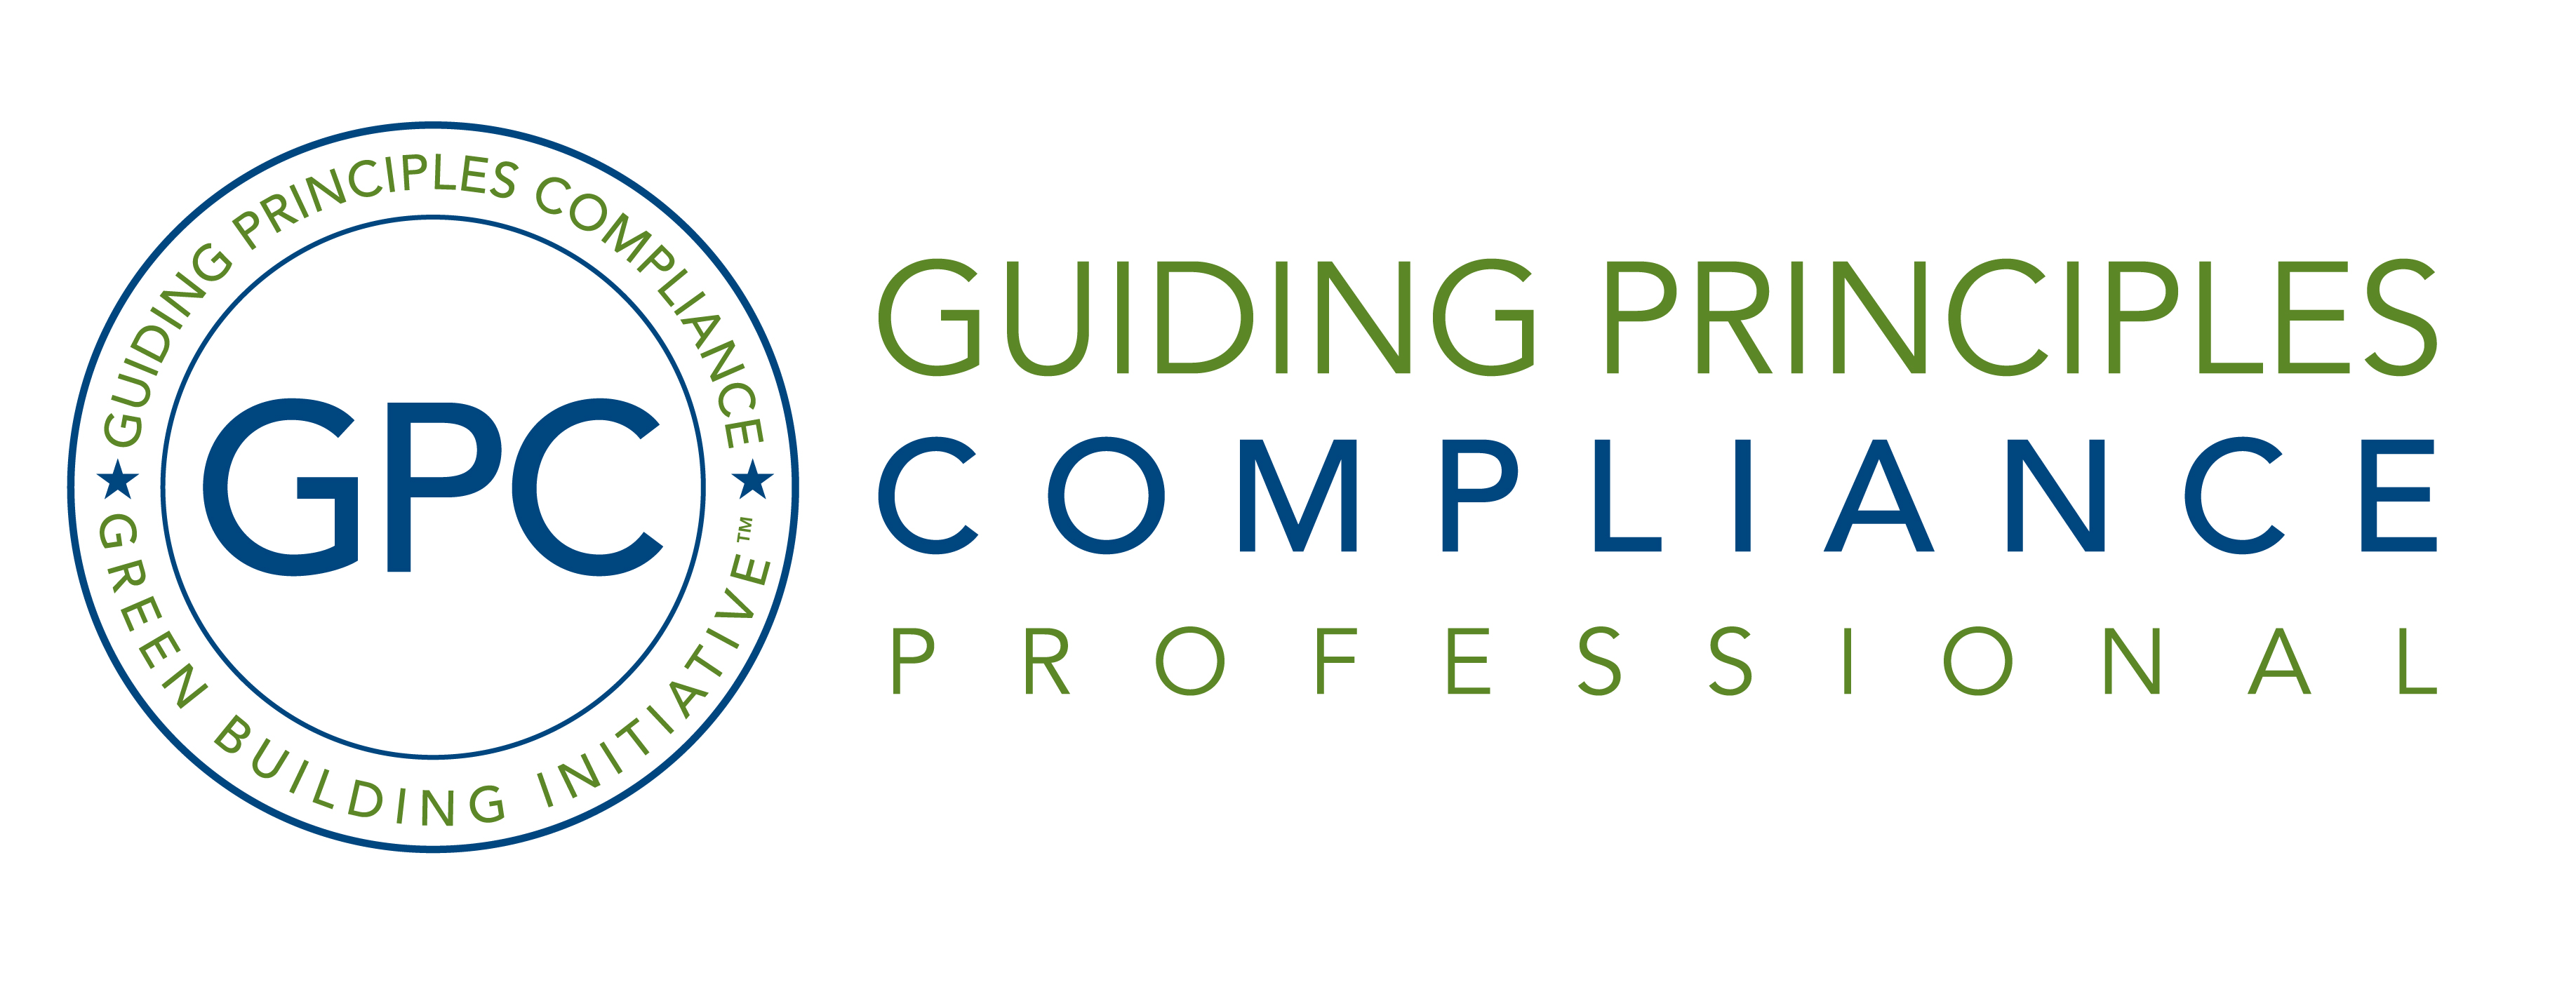 Green Building Initiative Professional Certification